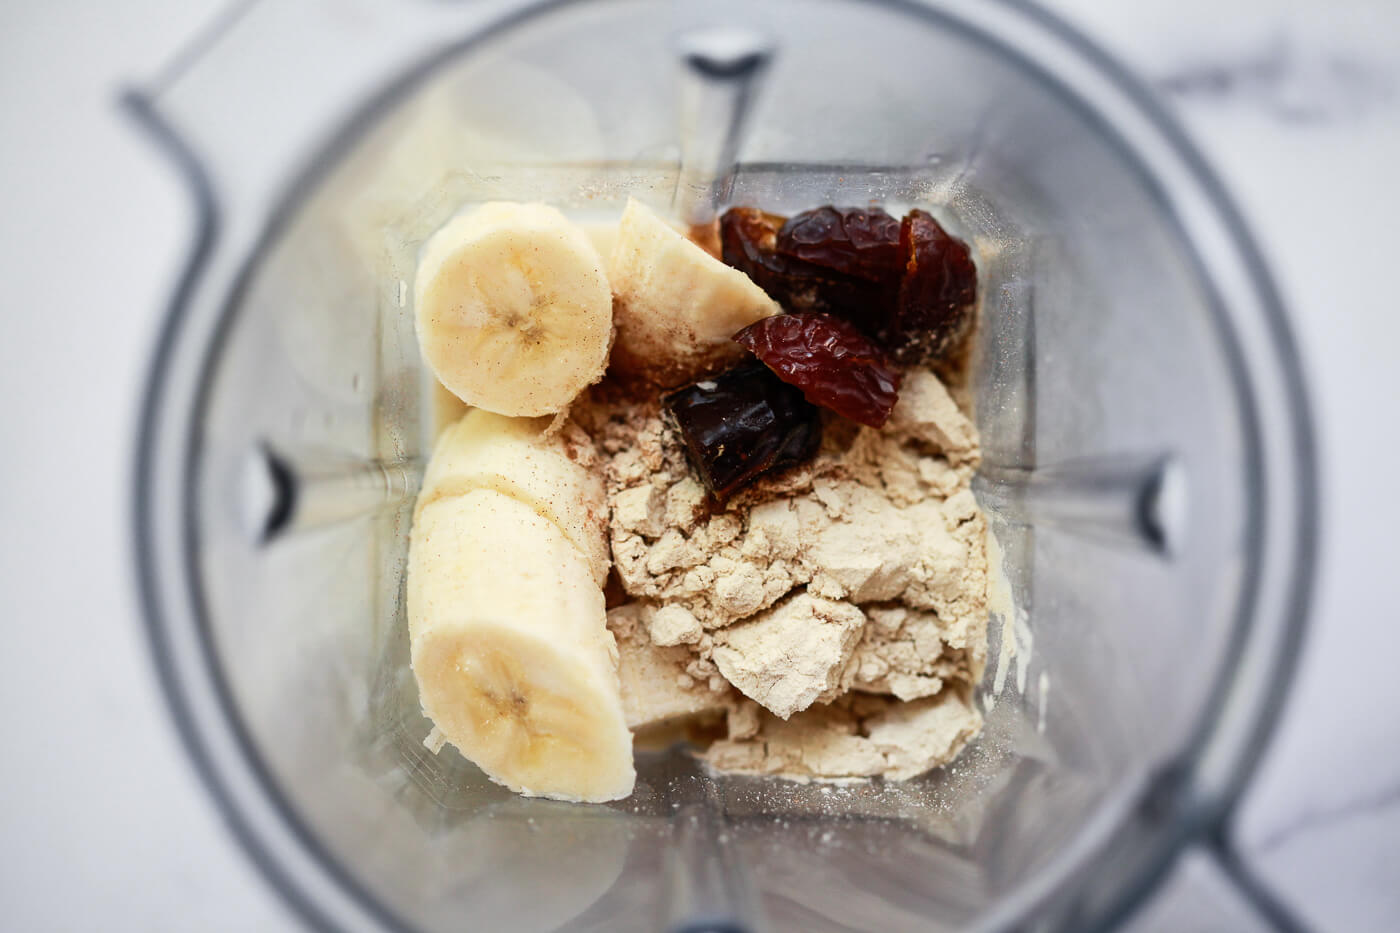 All the ingredients for a healthy date shake shown in a Vitamix blender.